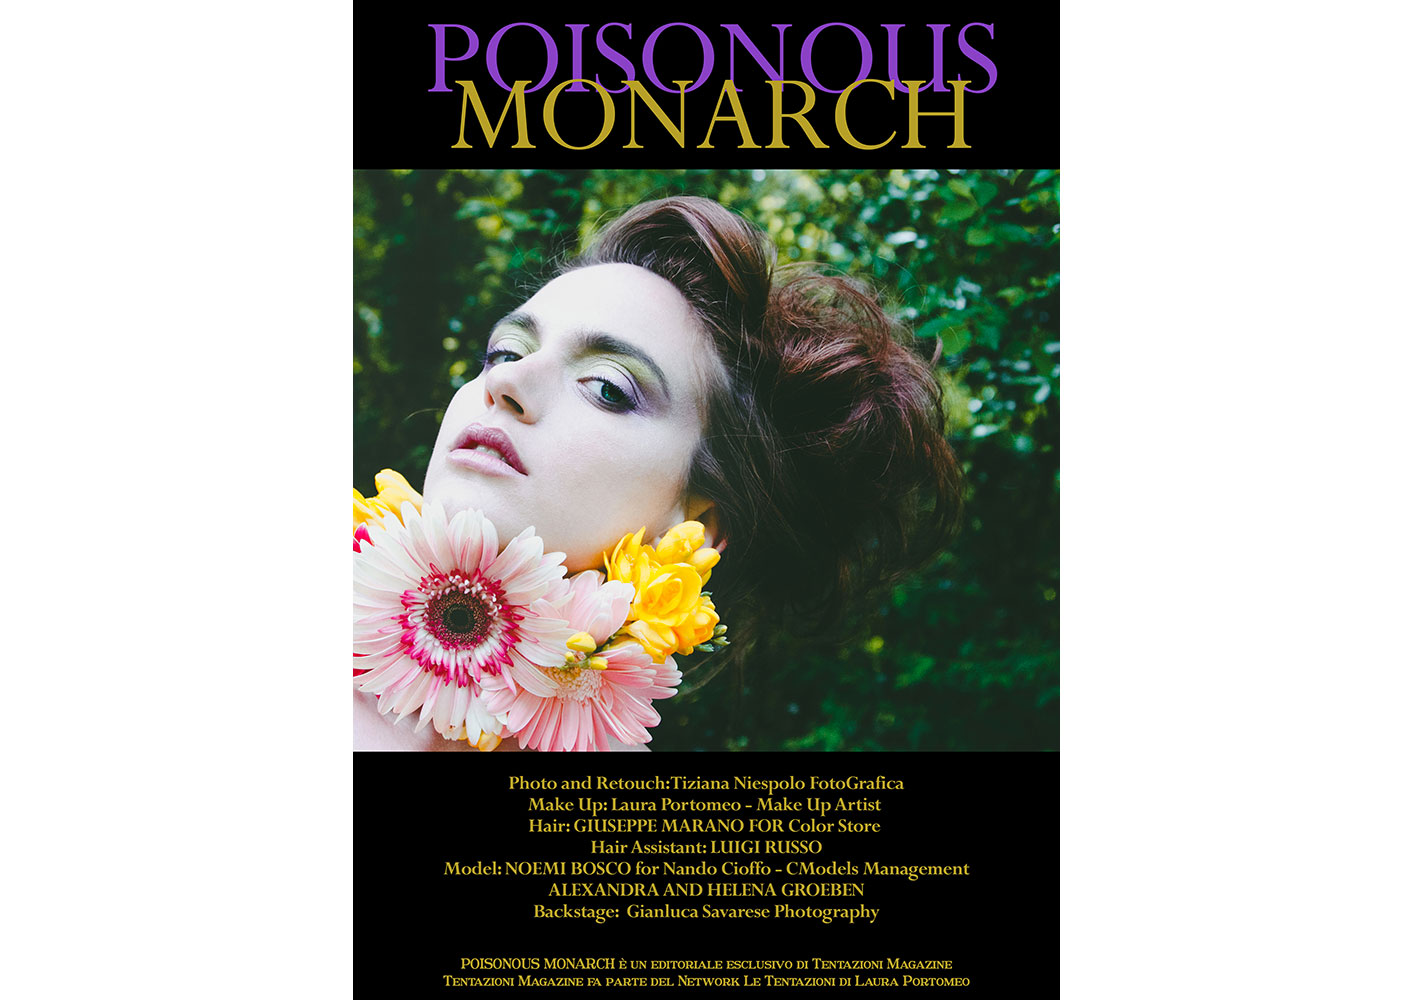 poisonous-monarch-07